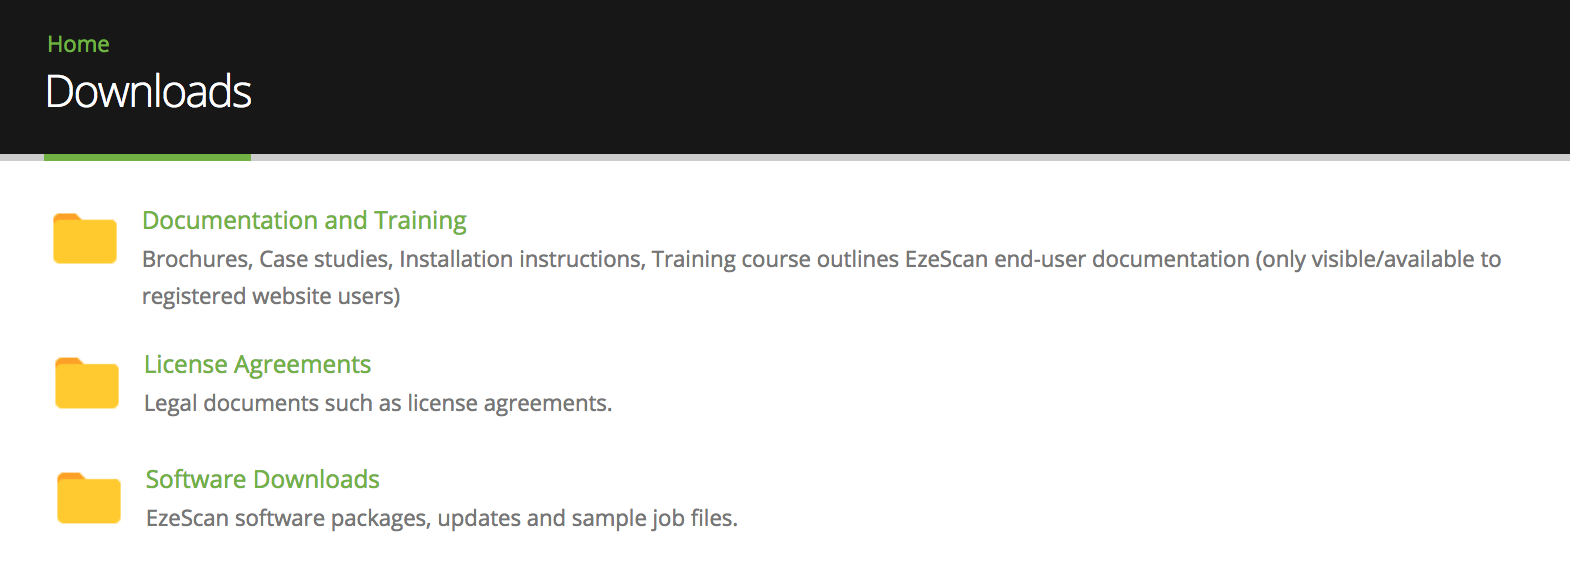 Ezescan-FAQ-Downloading-an-evaluation-version-of-EzeScan-Image5.png